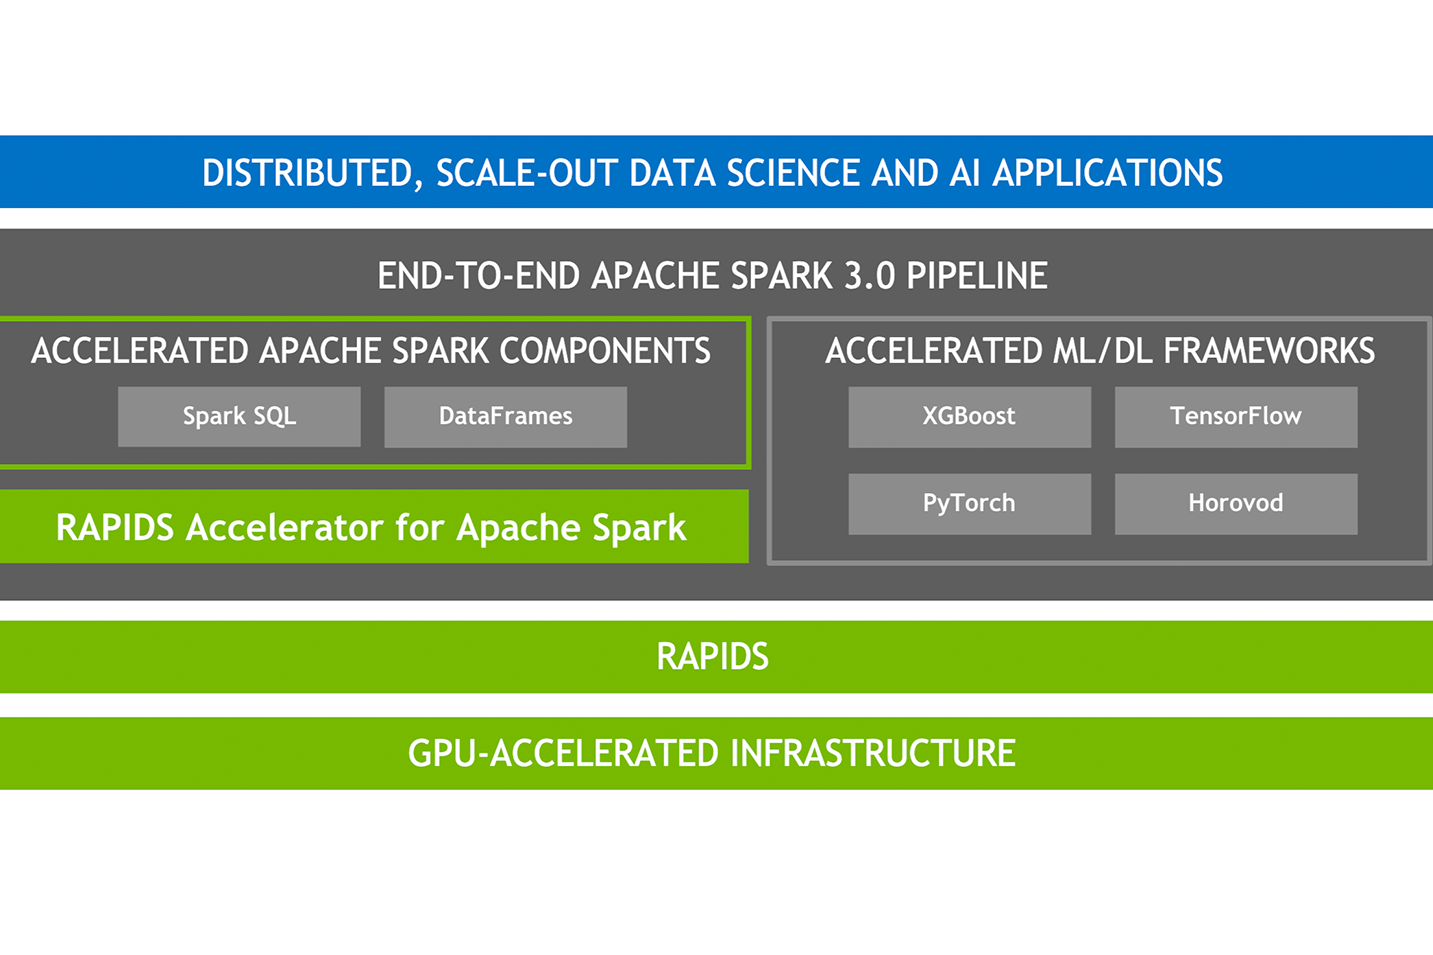 Accelerating Apache Spark 3.0 with GPUs and RAPIDS